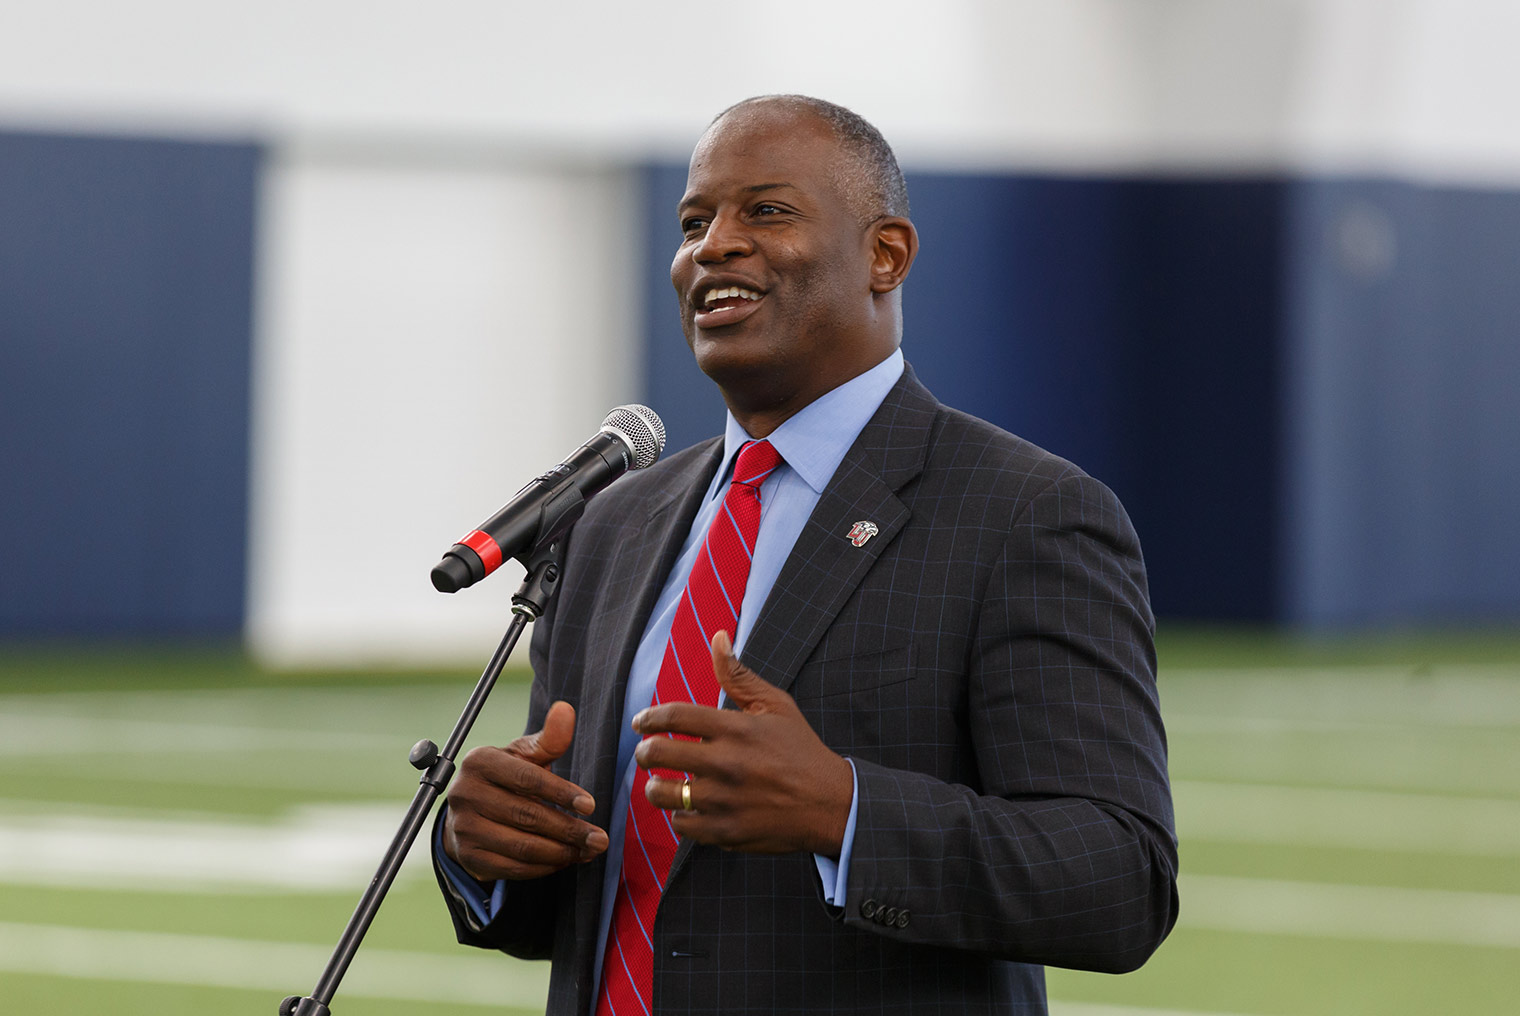 Liberty Head Coach Turner Gill, shown at a grand opening for the Liberty Indoor Practice Facility on Aug. 18, 2017, announced his seventh recruiting class on Wednesday. (Photo by Joel Coleman)